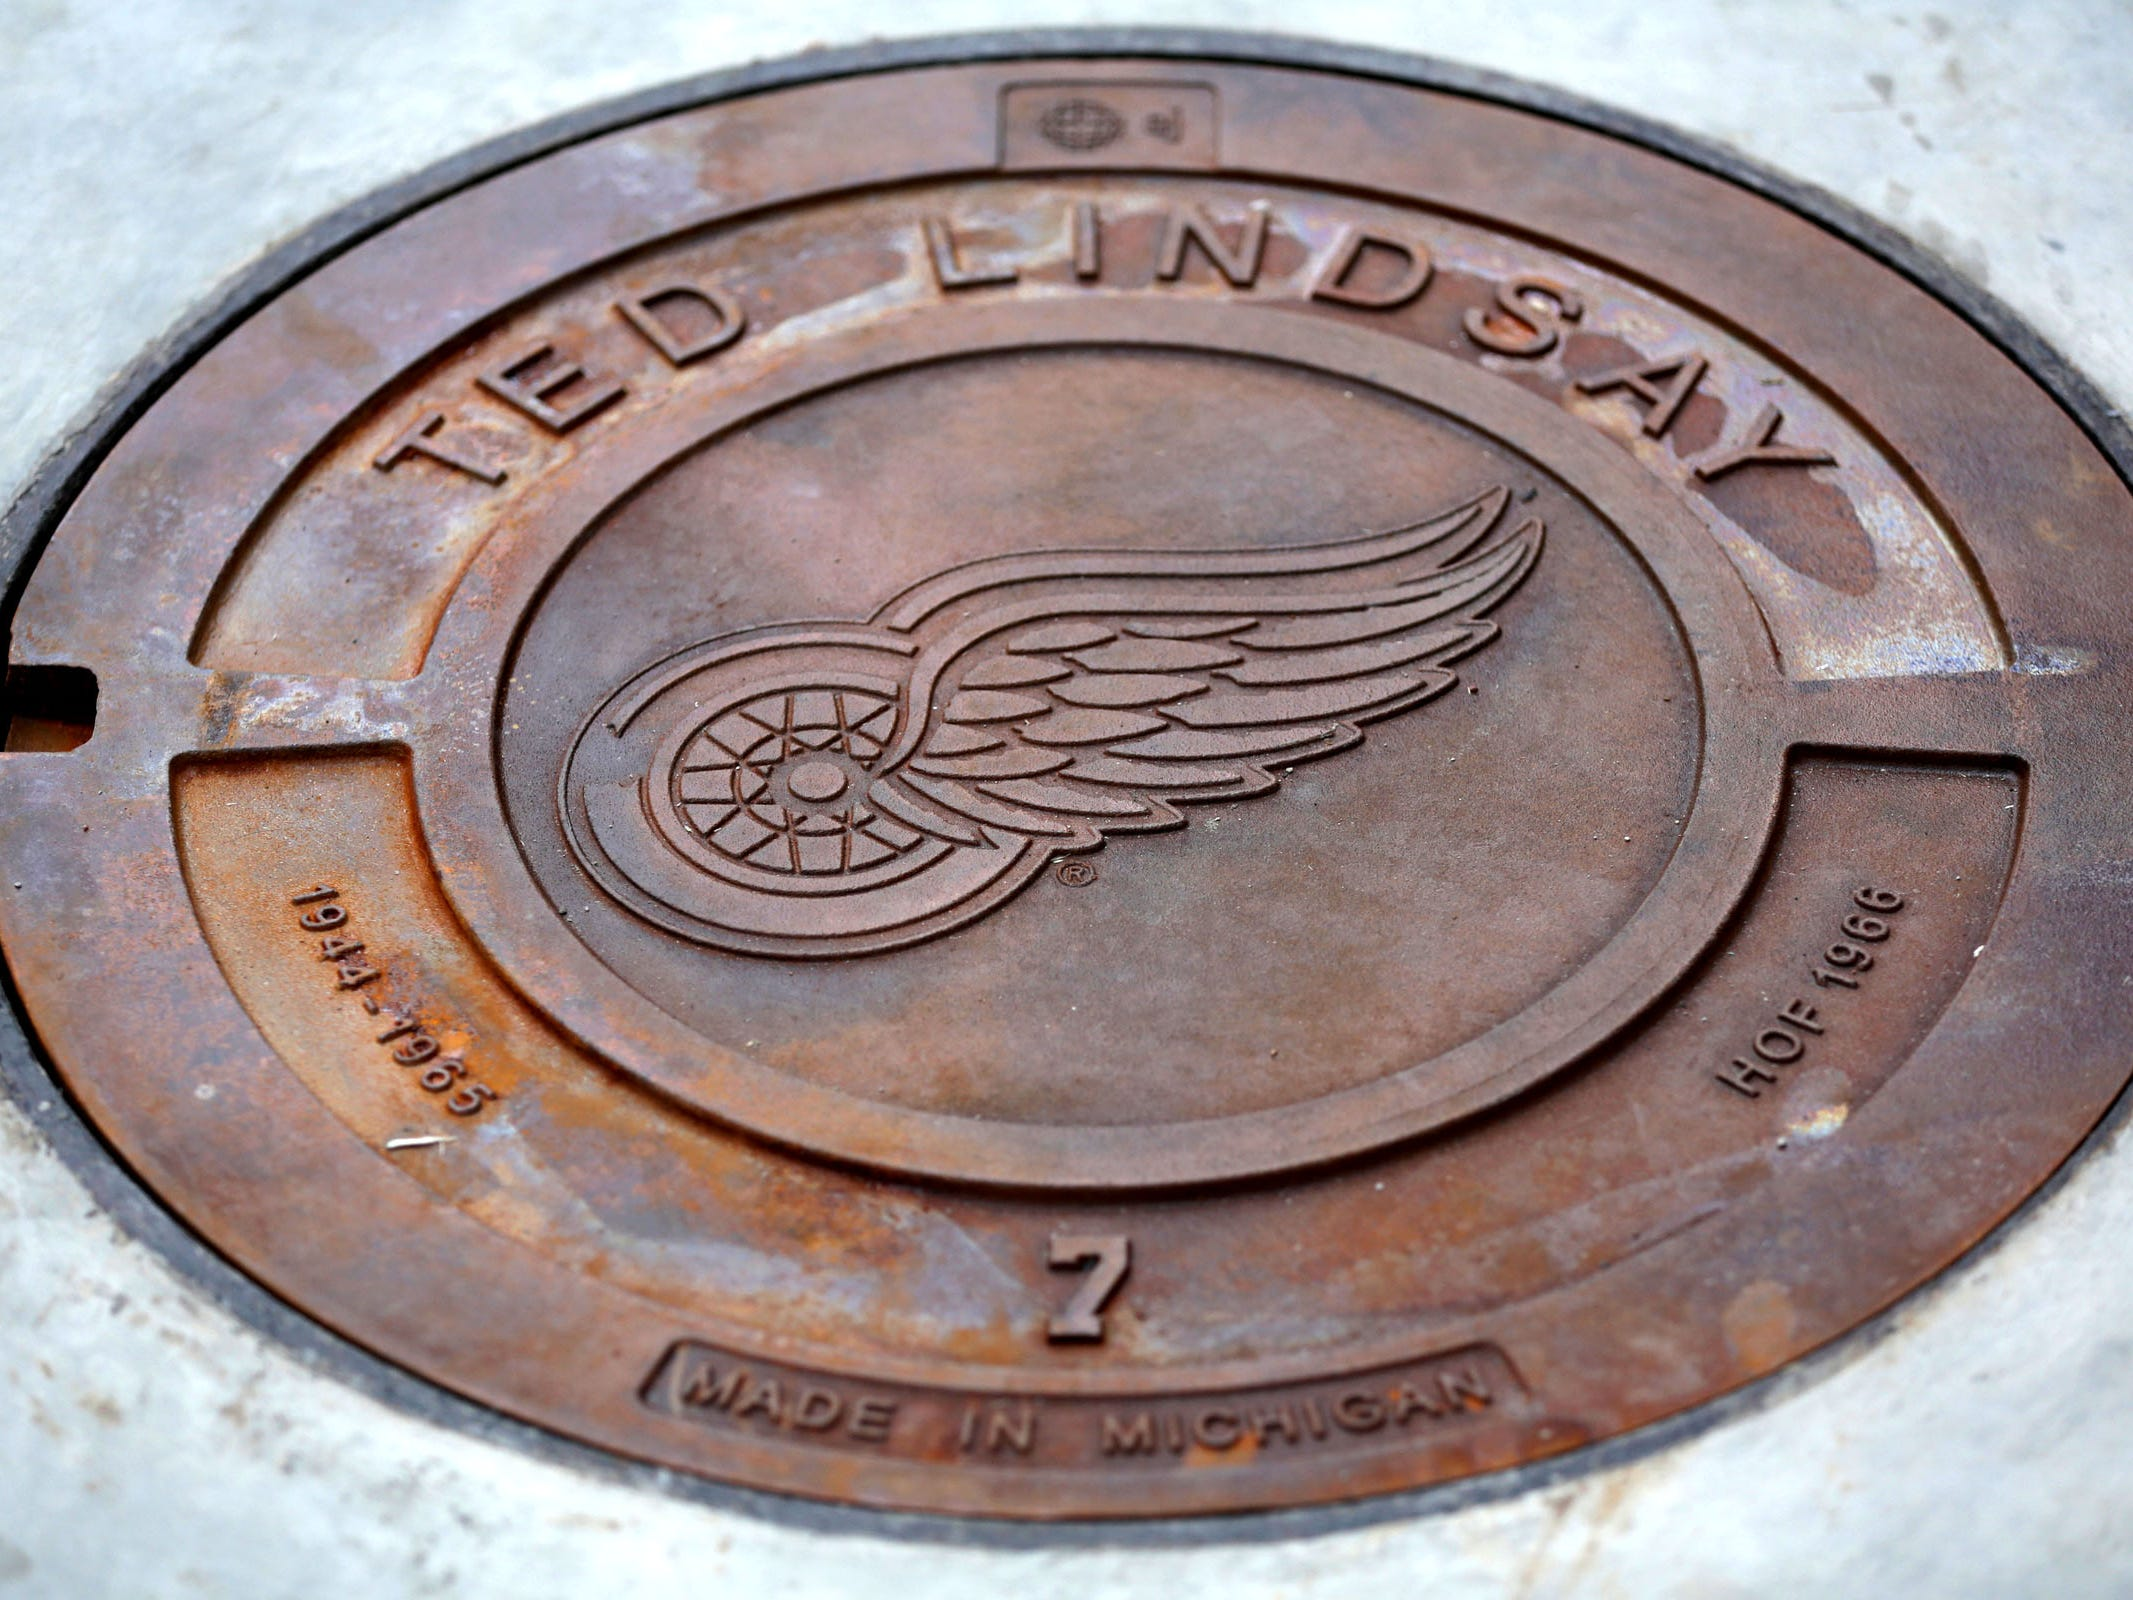 Manhole cover honoring Detroit Red Wings Ted Lindsay on the concourse level at Little Caesars Arena in Detroit on Wednesday, September 6, 2017.